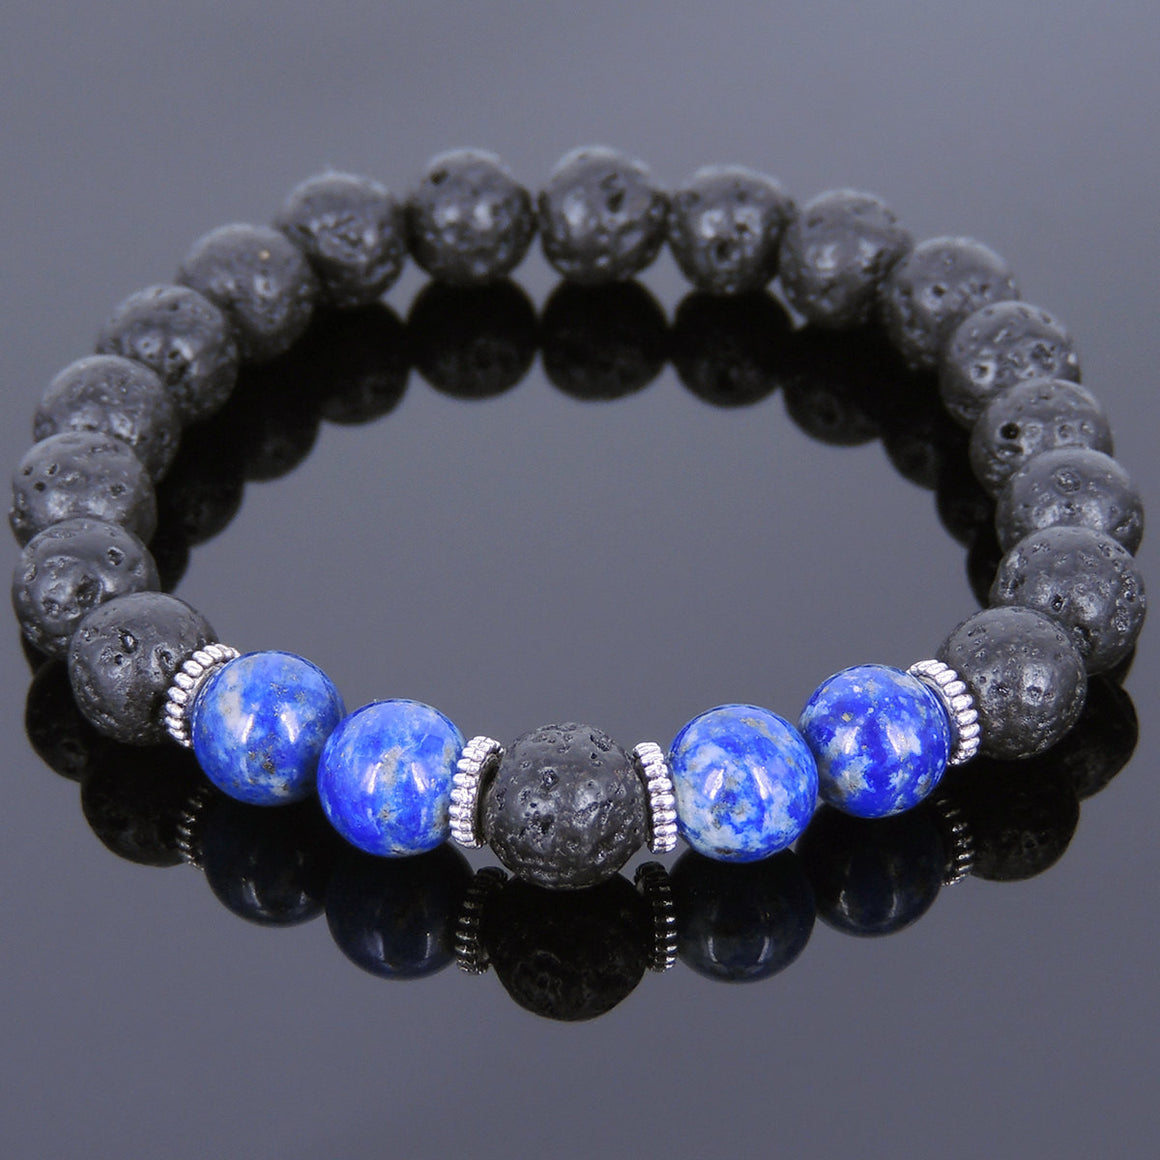 Lapis Lazuli & Lava Rock Healing Gemstone Bracelet with Tibetan Silver Spacers - Handmade by Gem & Silver TSB093